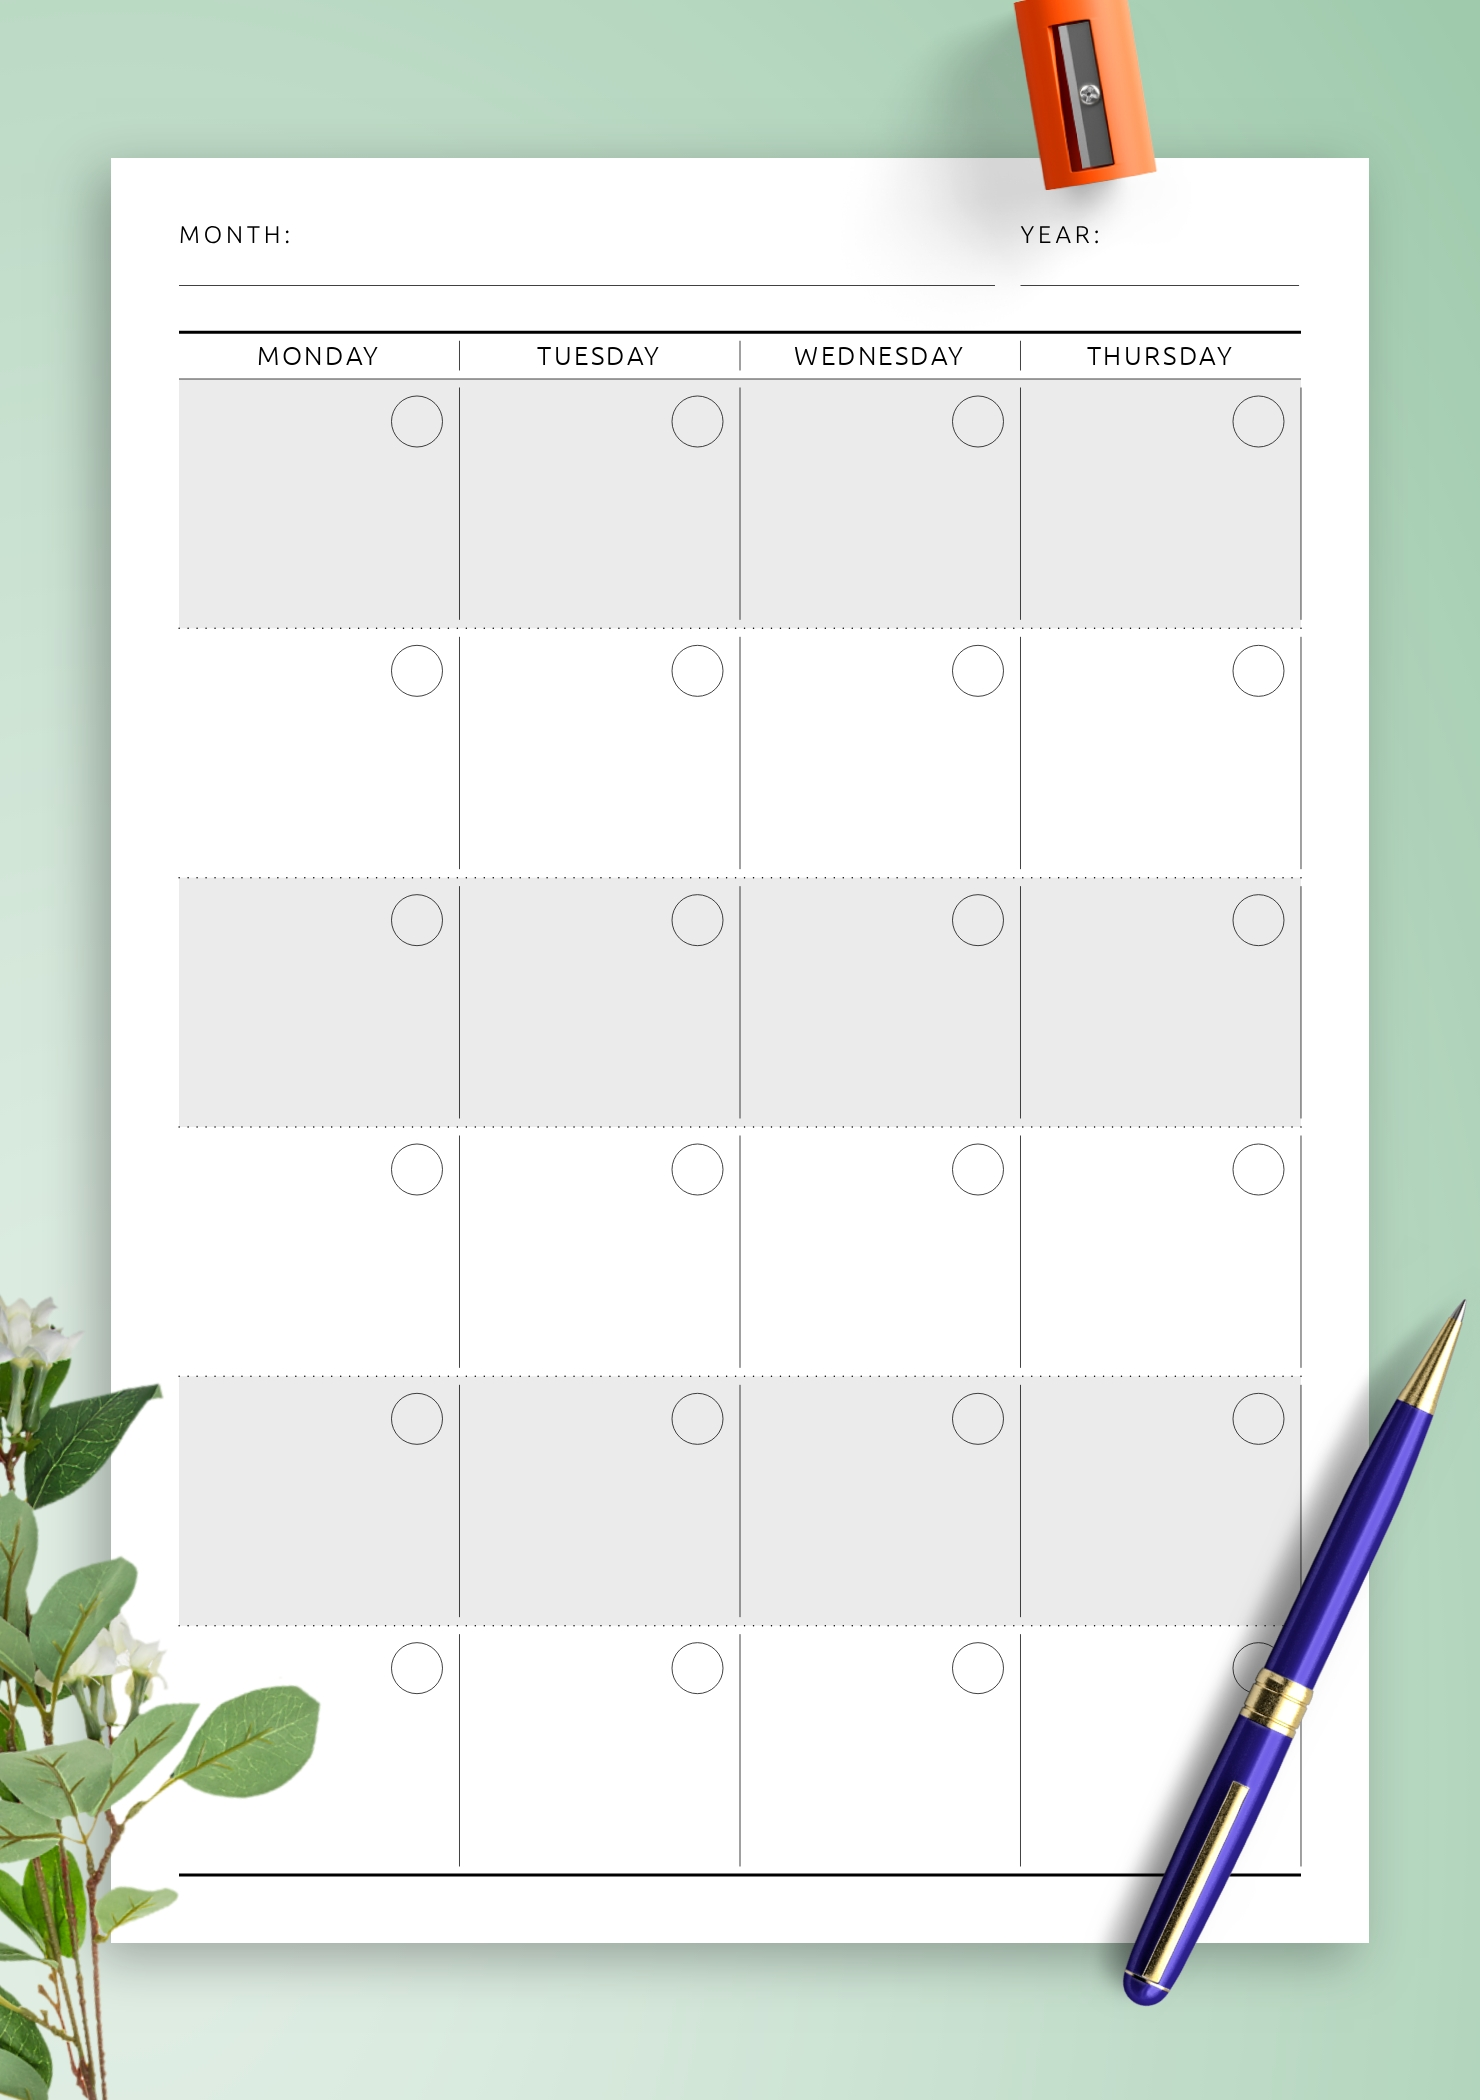 Pick Undated Printable Calendar